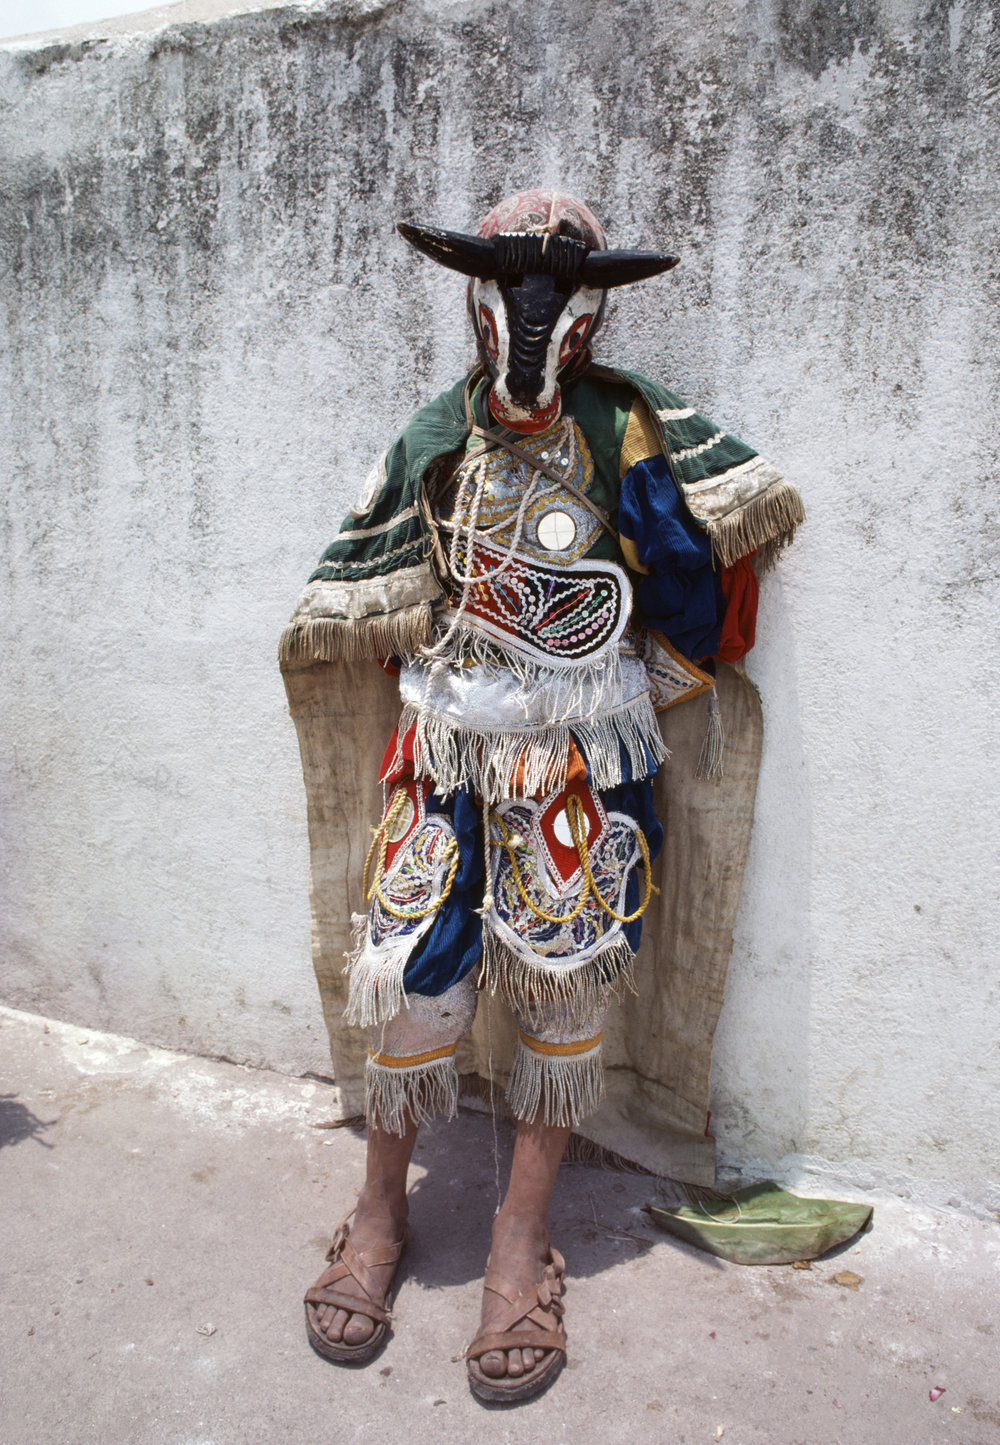 A Guatemalan man with a facemask of a bull stands against a wall during a festival near the Roman Catholic church of Santo Tomás in Chichicastenango, Guatemala May 1, 1982.